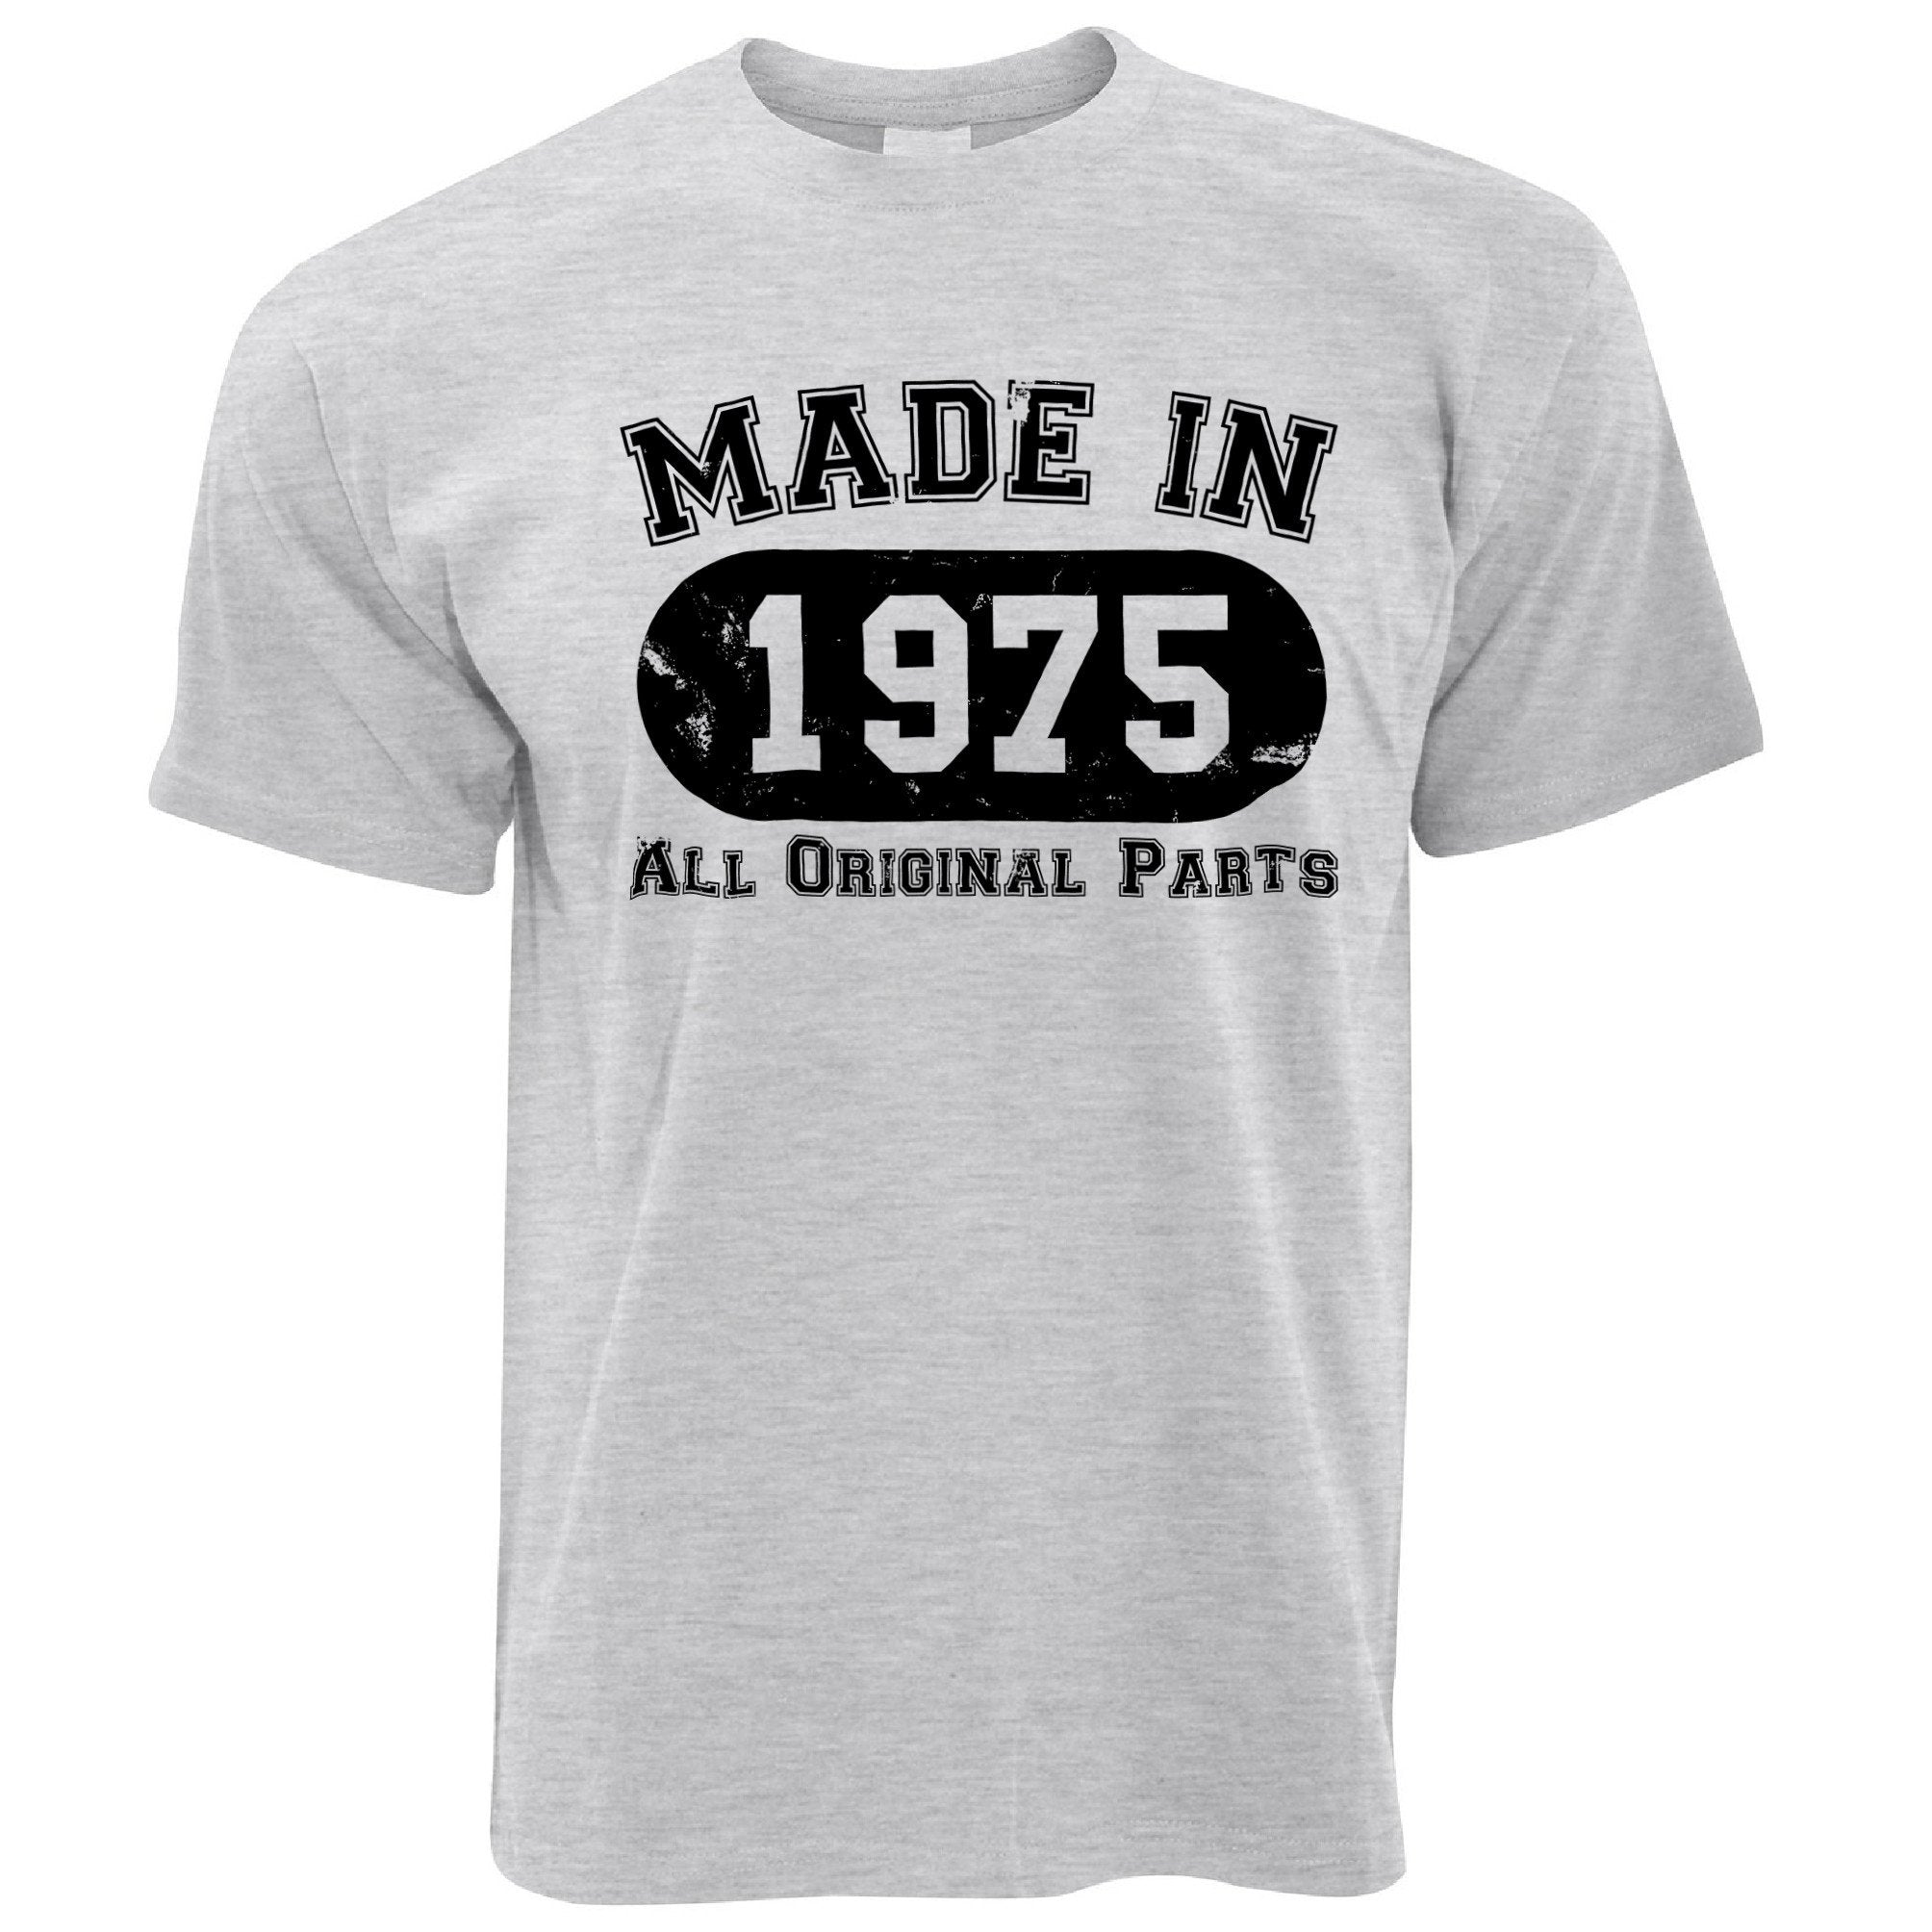 Made in 1975 All Original Parts Mens T-Shirt [Distressed]